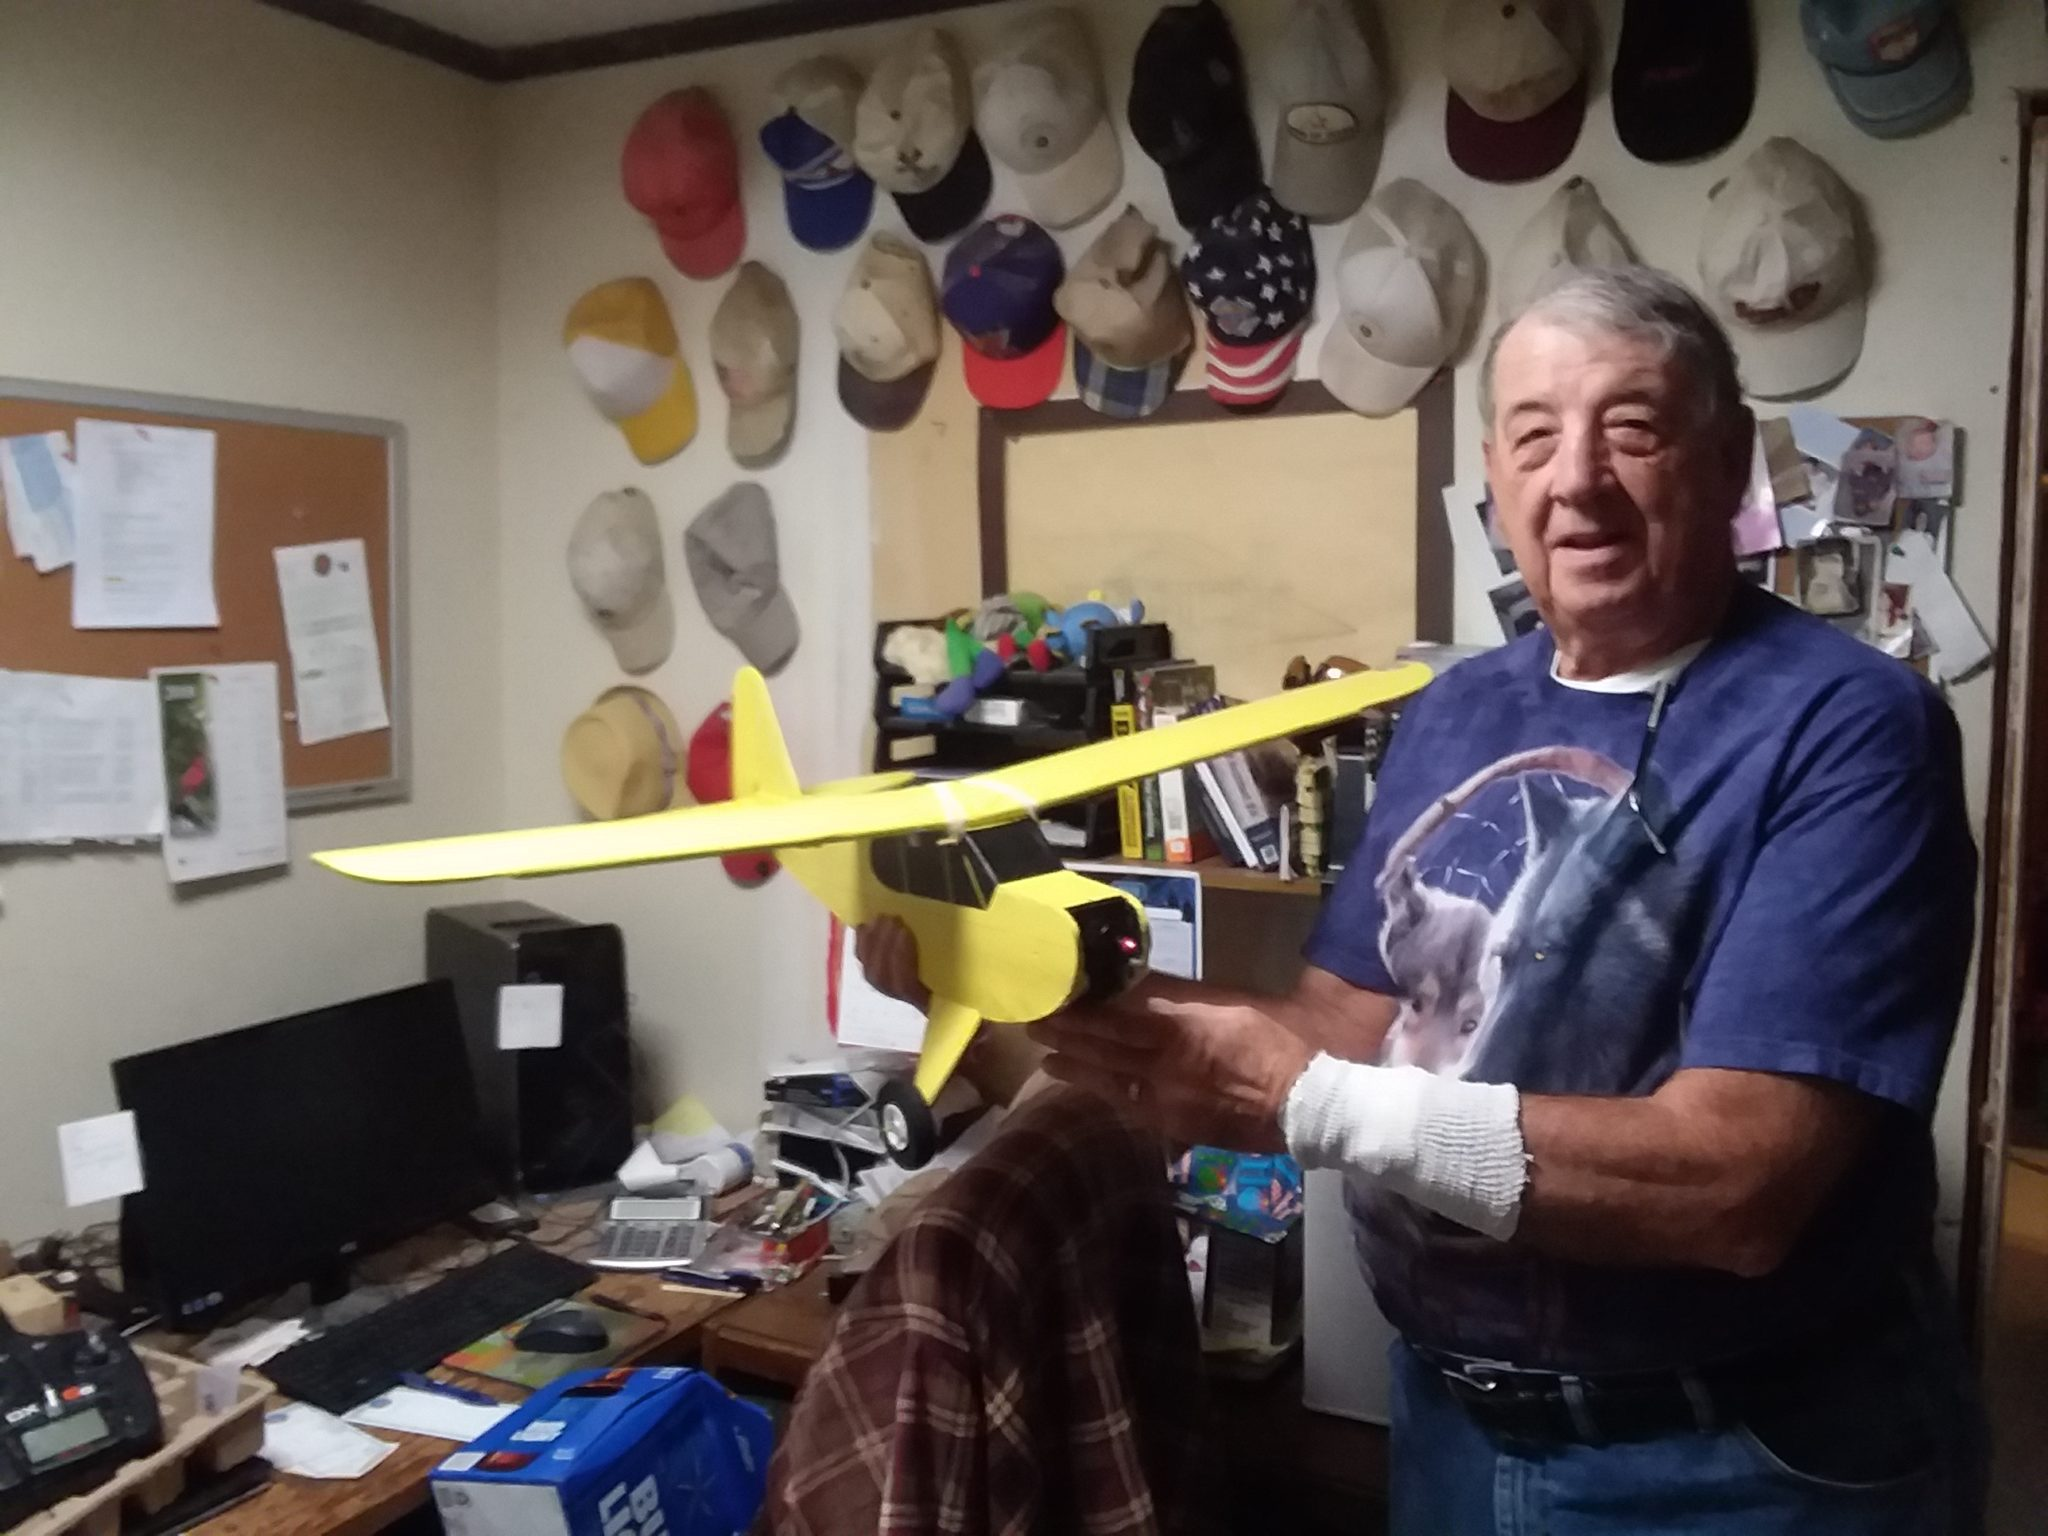 My father in law is switching from golf to r/c. His first plate is from Flite test 20171209_07442520